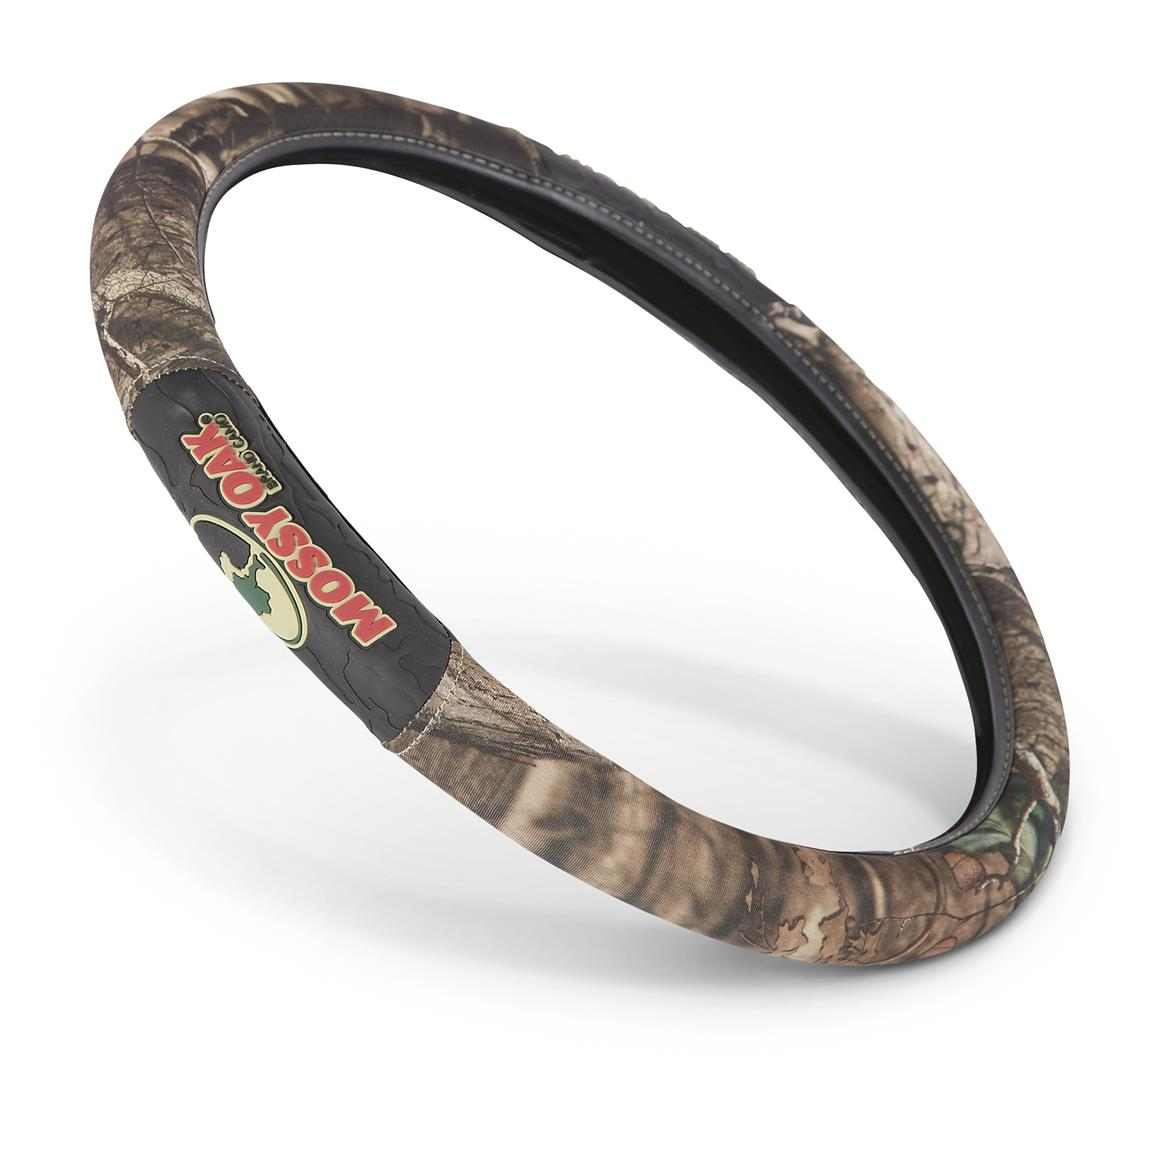 2-grip Universal Camo Steering Wheel Cover, Mossy Oak